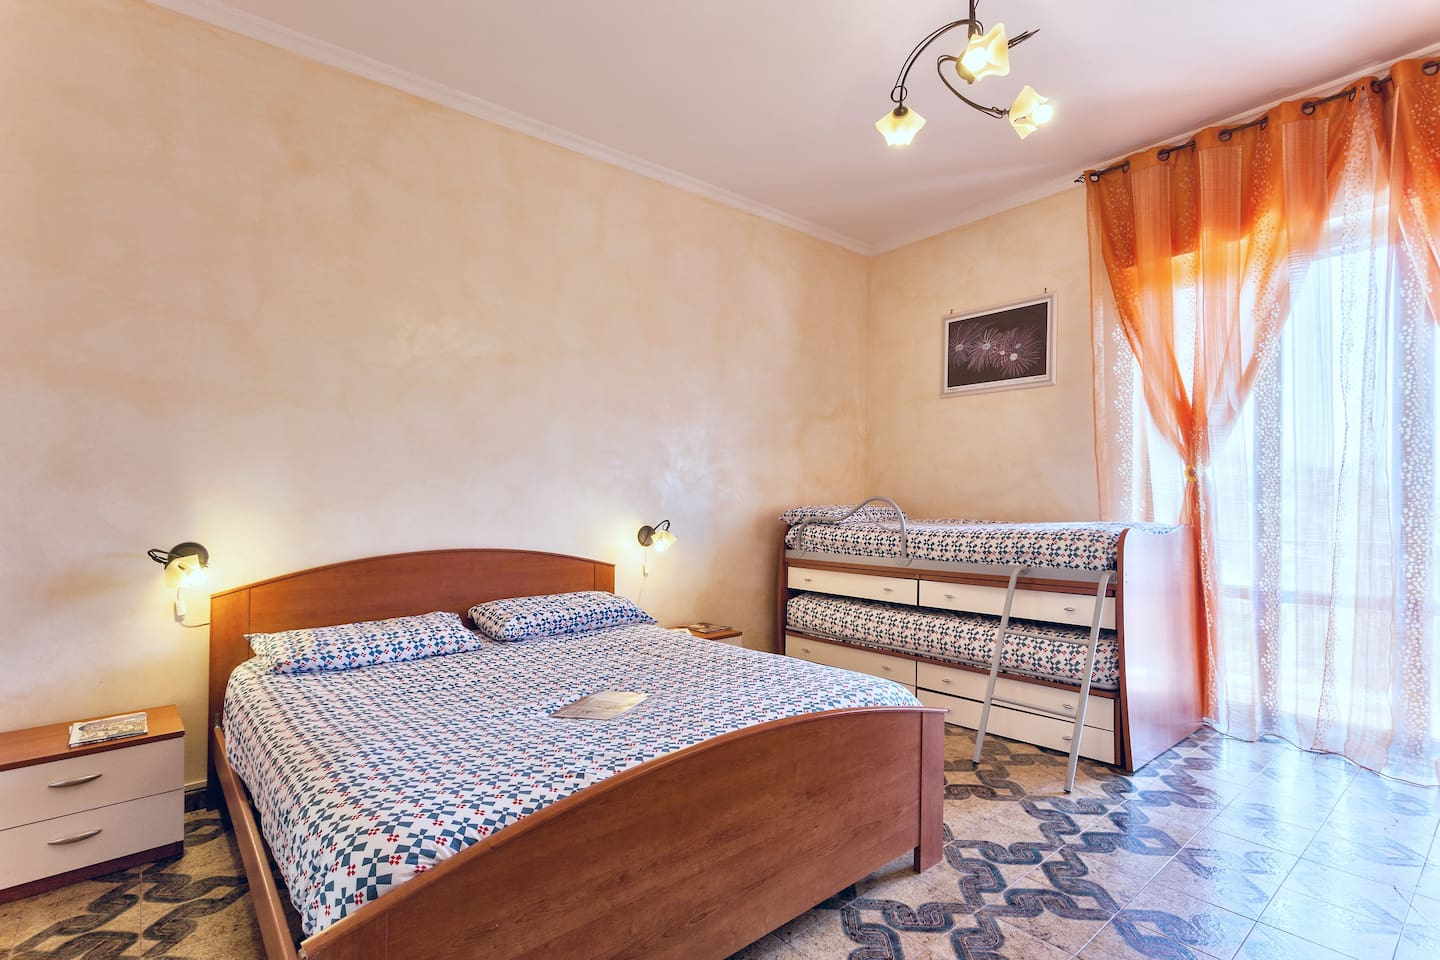 Room Saturno: for beds for our guests, a private bathroom and a balcony